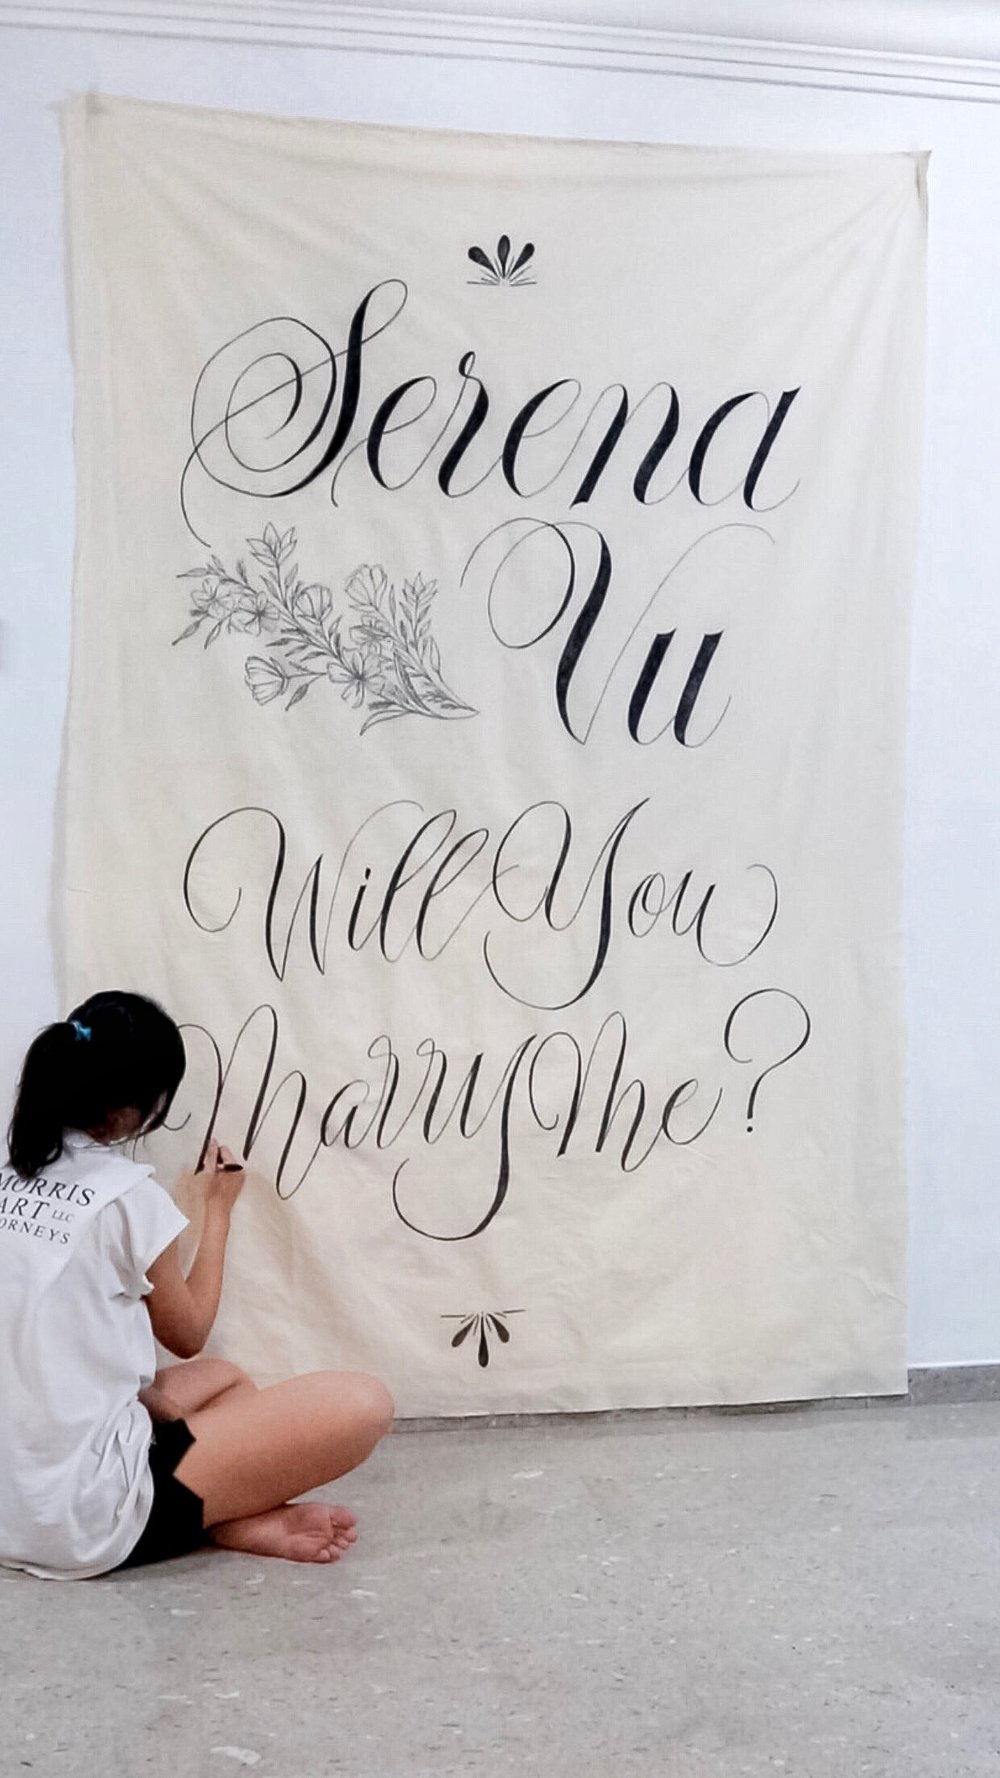 Will You Marry Me Wall Tapestry/ Backdrop.jpg